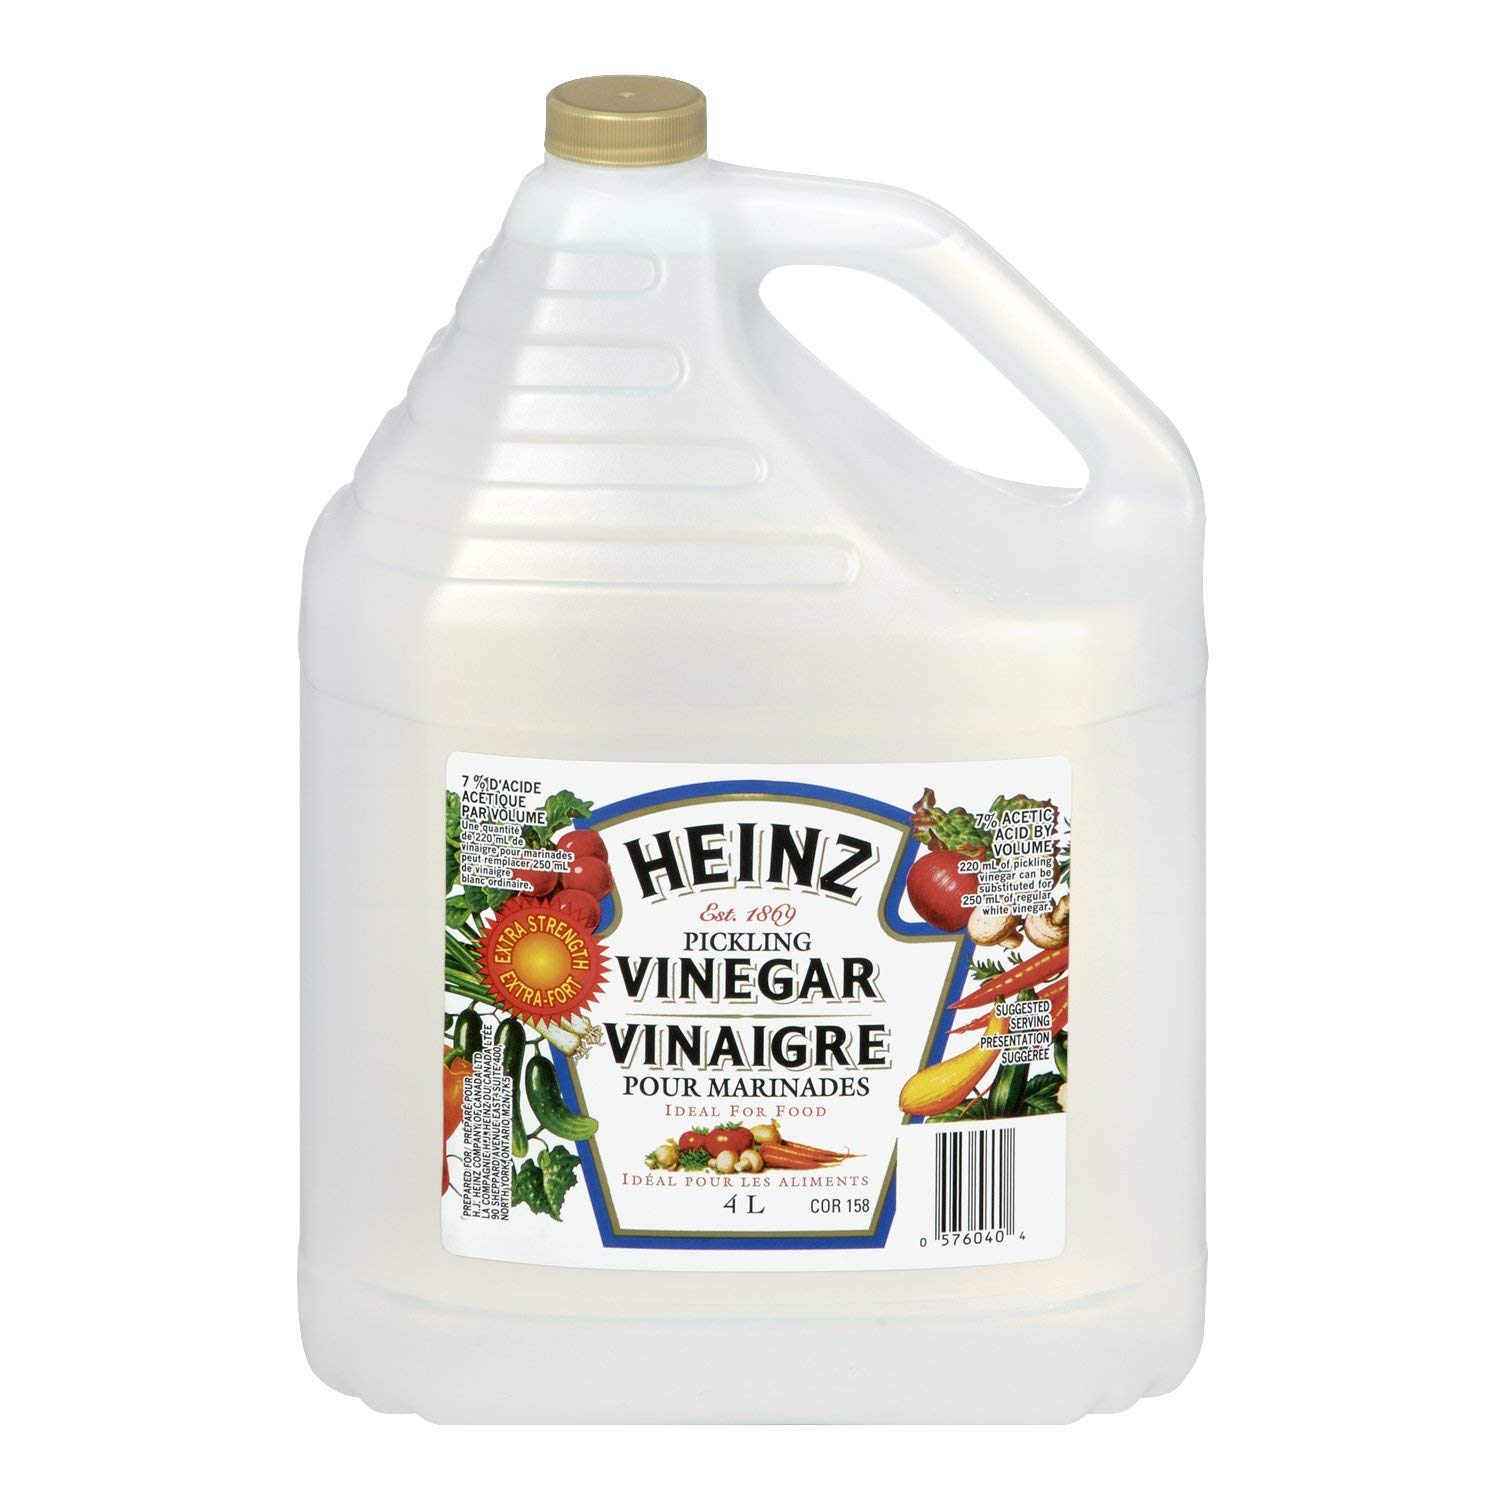 Heinz Pickling Vinegar, 4 Liters/1.06 Gallons, Imported from Canada} by Heinz